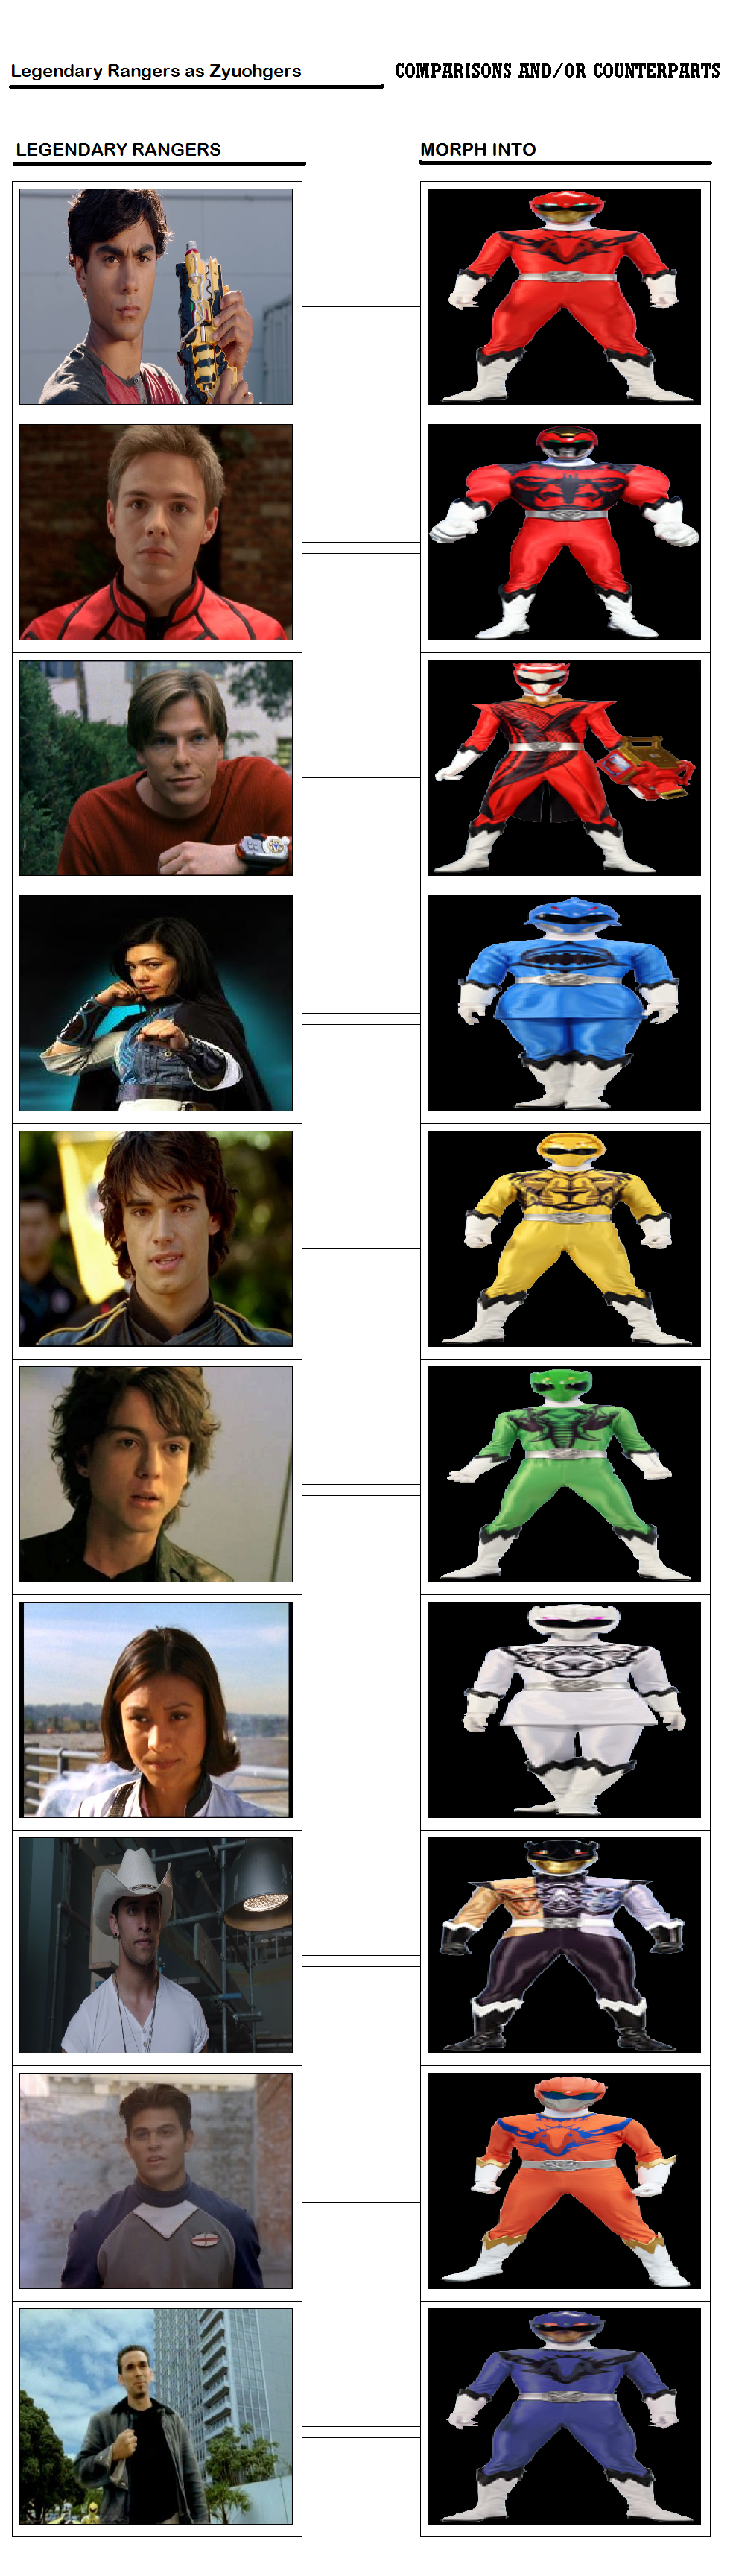 Legendary Rangers as Zyuohgers by Prentis-65